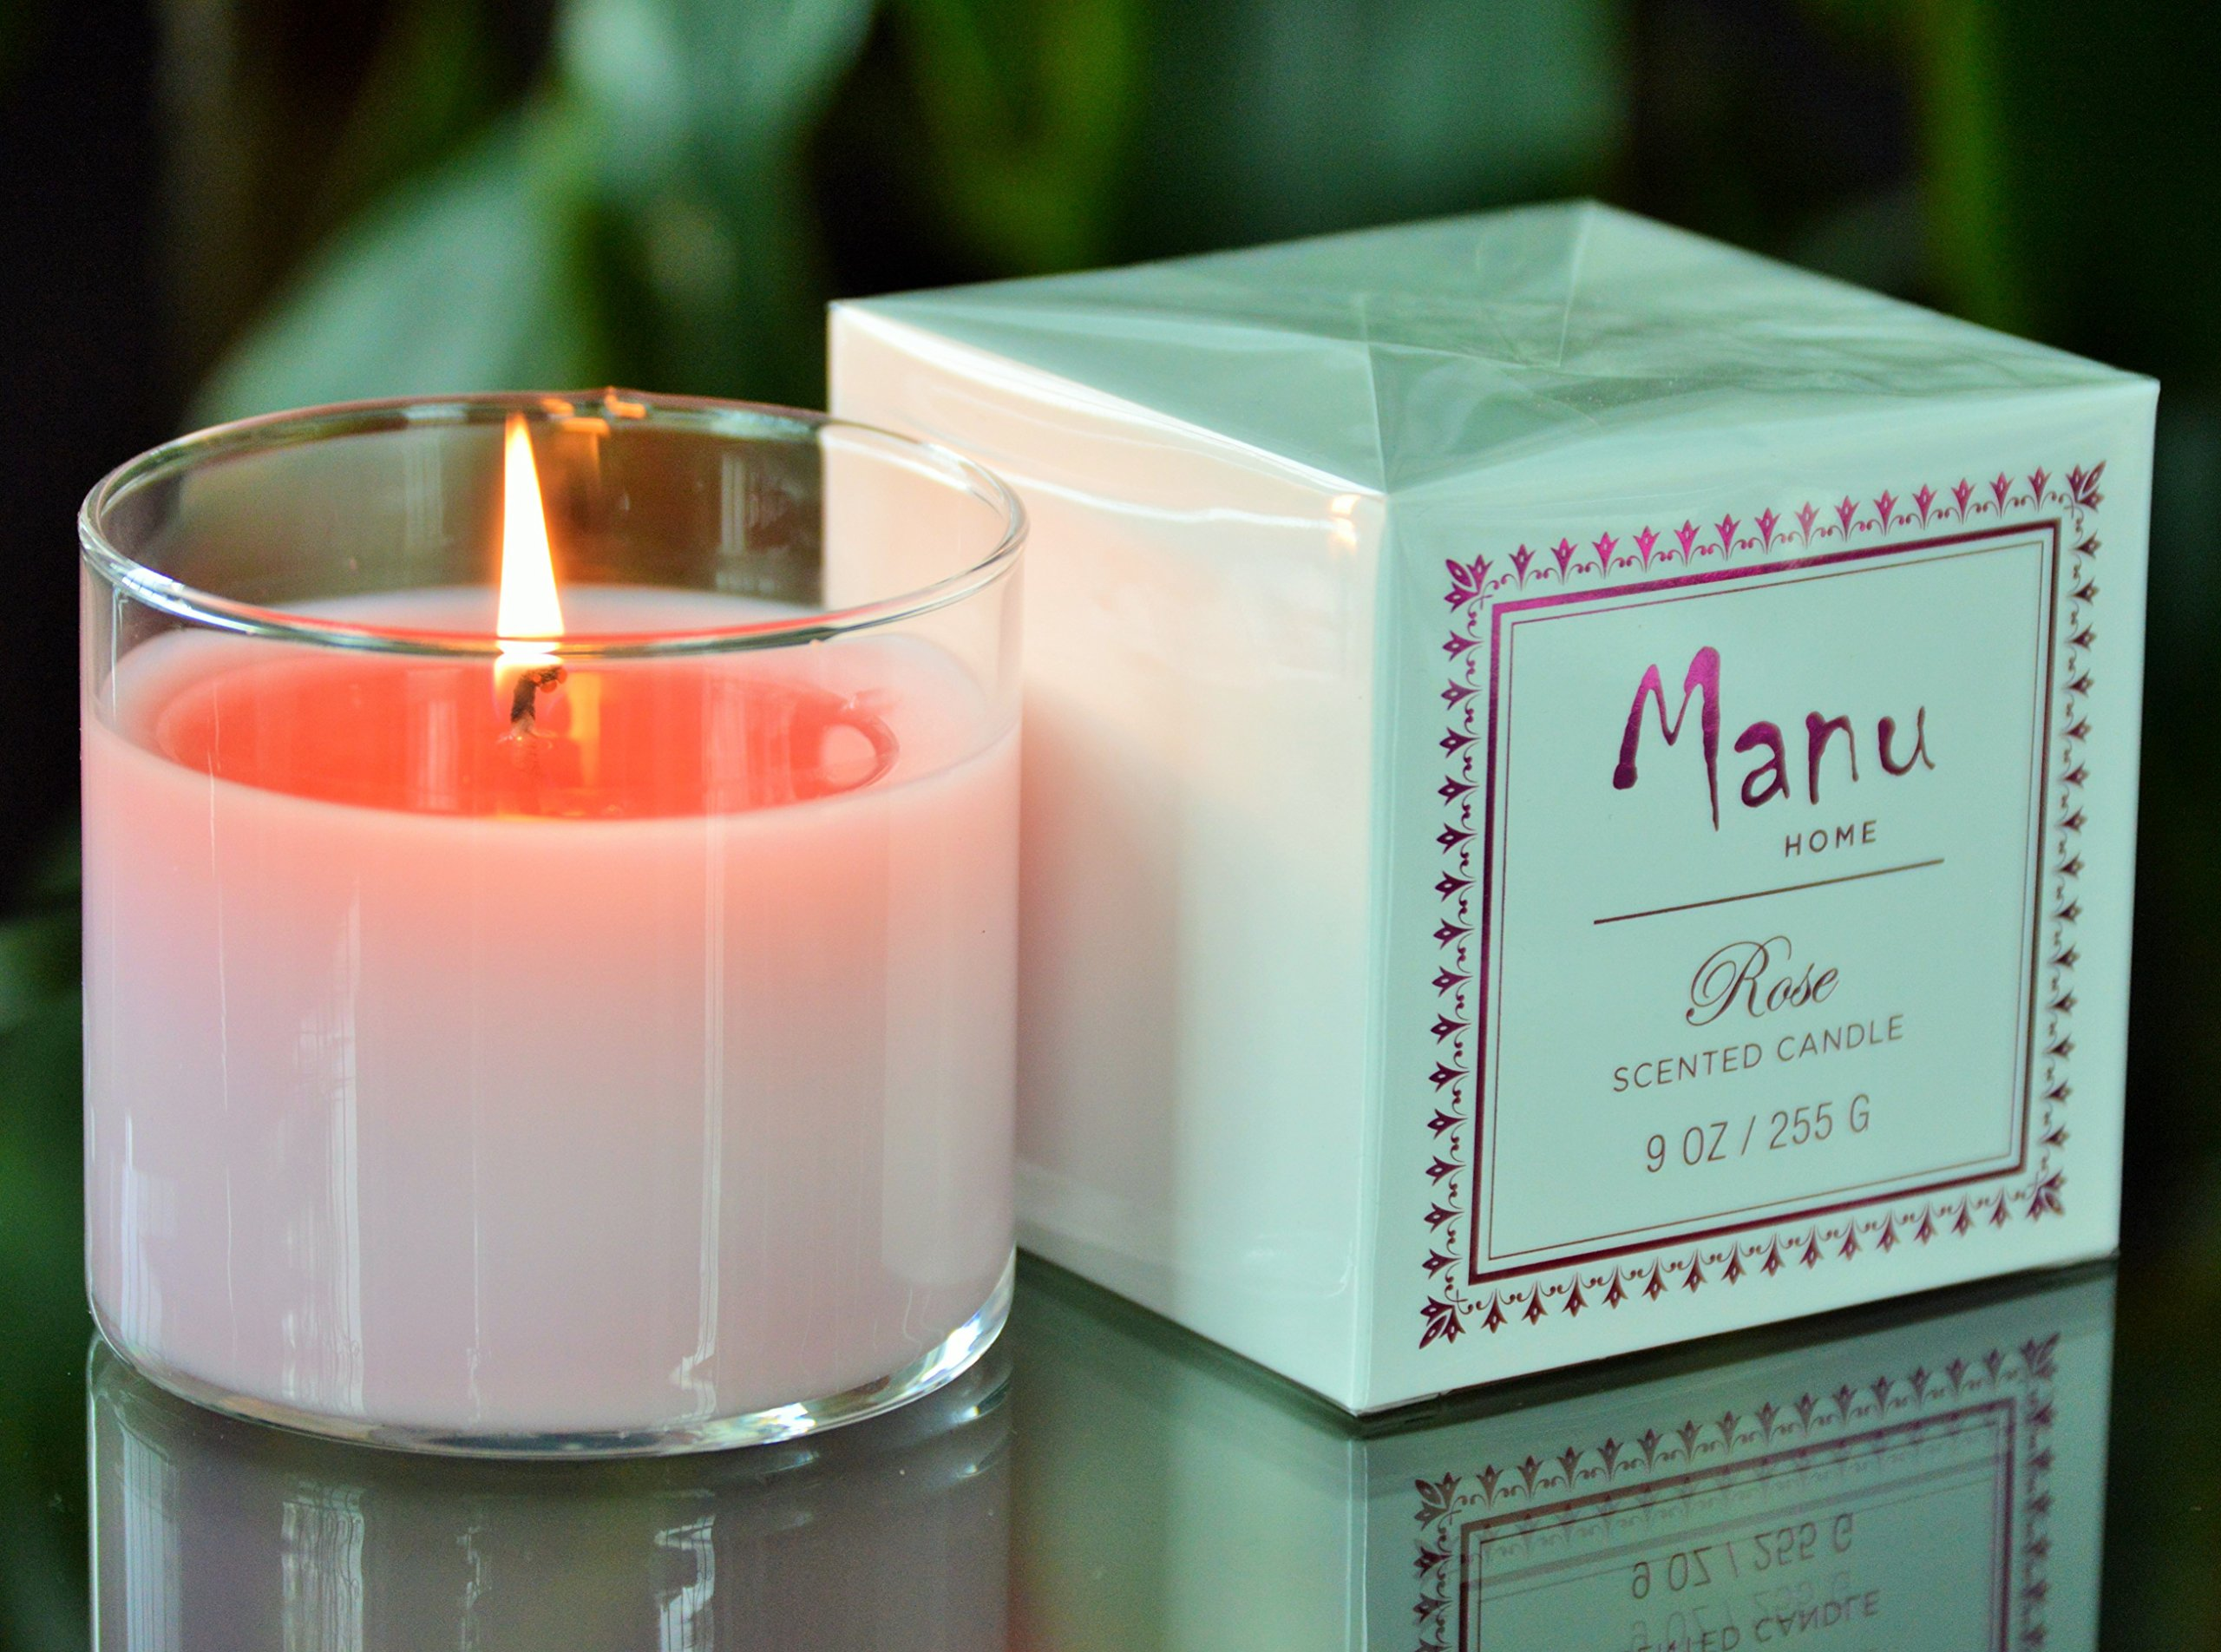 Manu Home Aromatherapy ROSE Candle in a Beautiful Reusable Clear Glass~ Infused with Tuberose to Enhance the Serene Floral Notes ~ Perfect Gift! ~ 9oz fill!